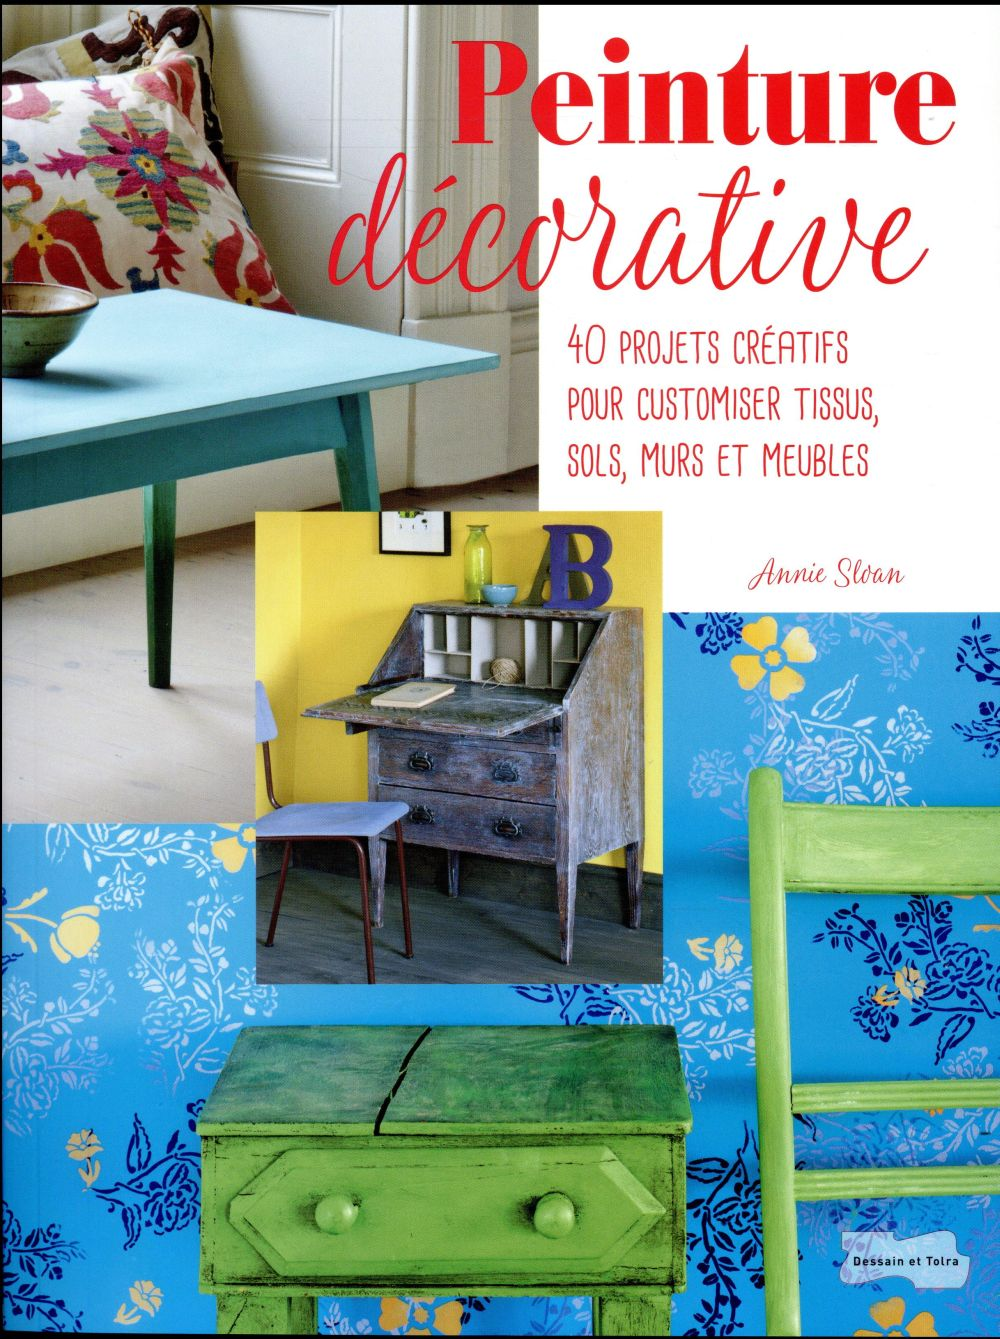 PEINTURE DECORATIVE